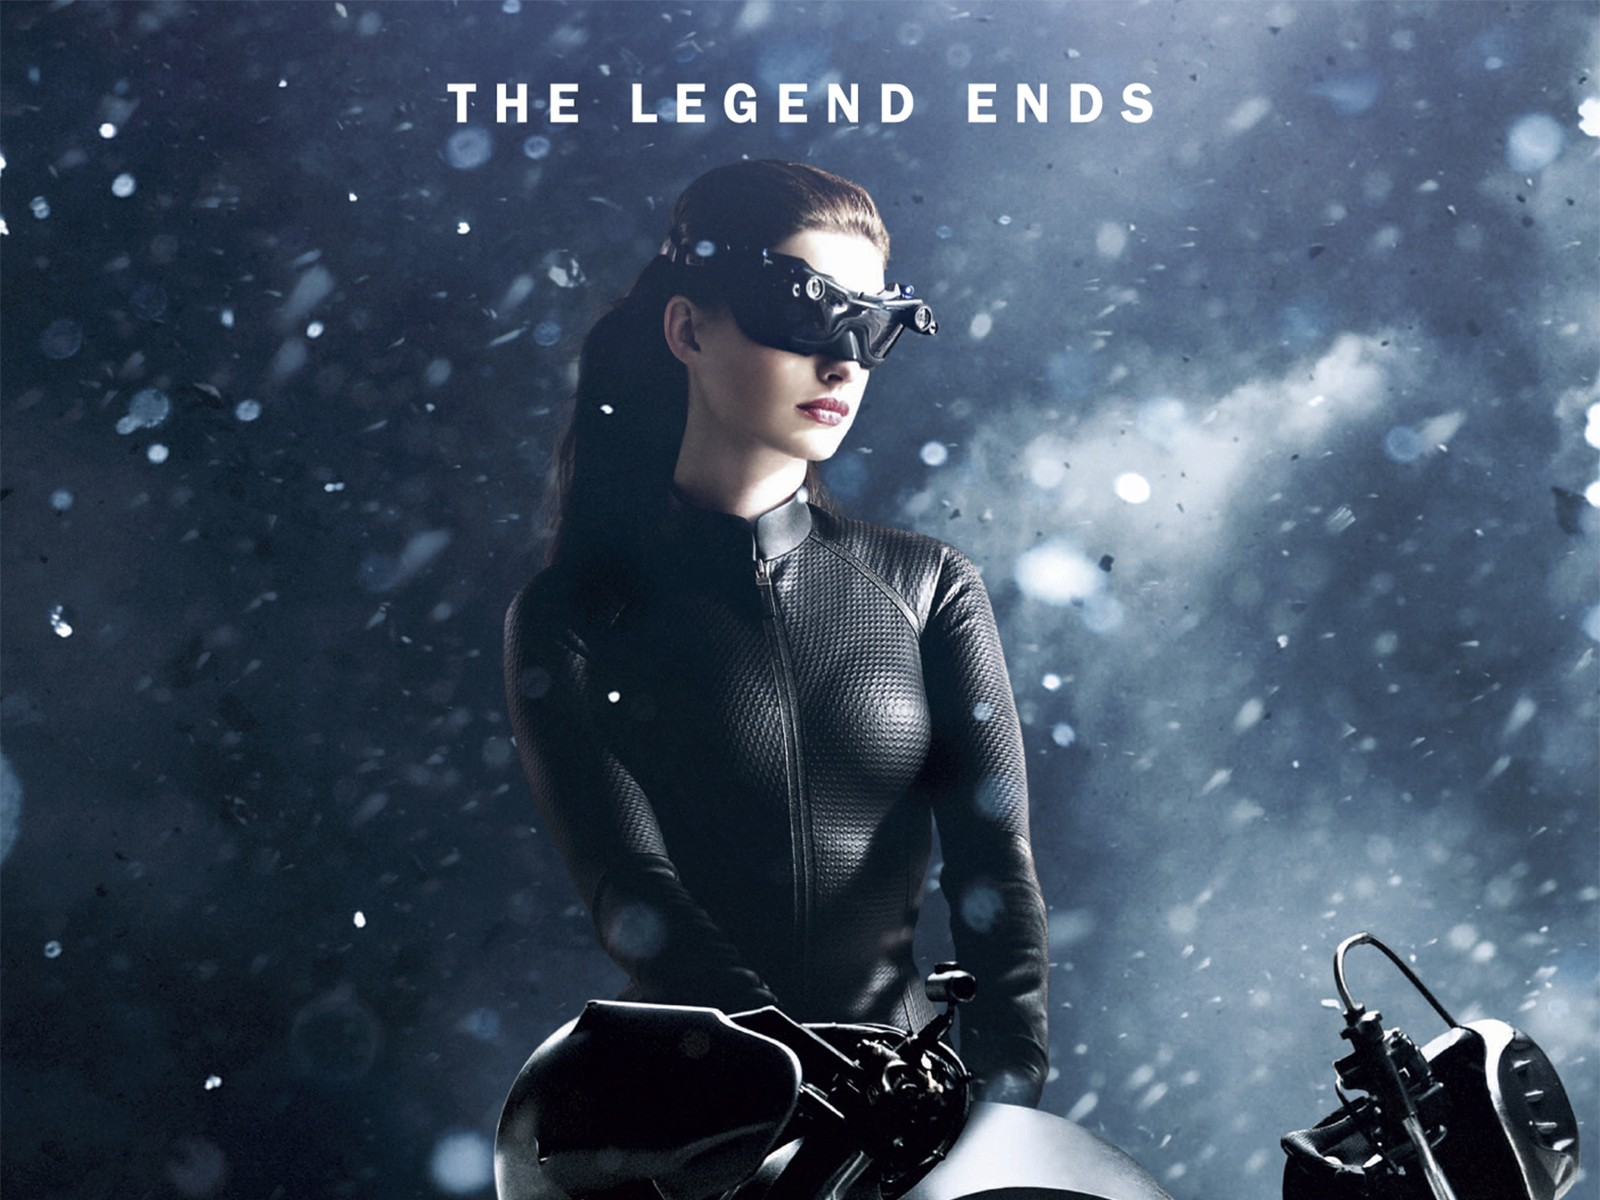 http://3.bp.blogspot.com/-sRbxtquh4mE/UArRs-V6YHI/AAAAAAAAC-Y/06KcGcBo7yI/s1600/The_Legends_Ends_Catwoman_HD_Wallpaper-Vvallpaper.Net.jpg